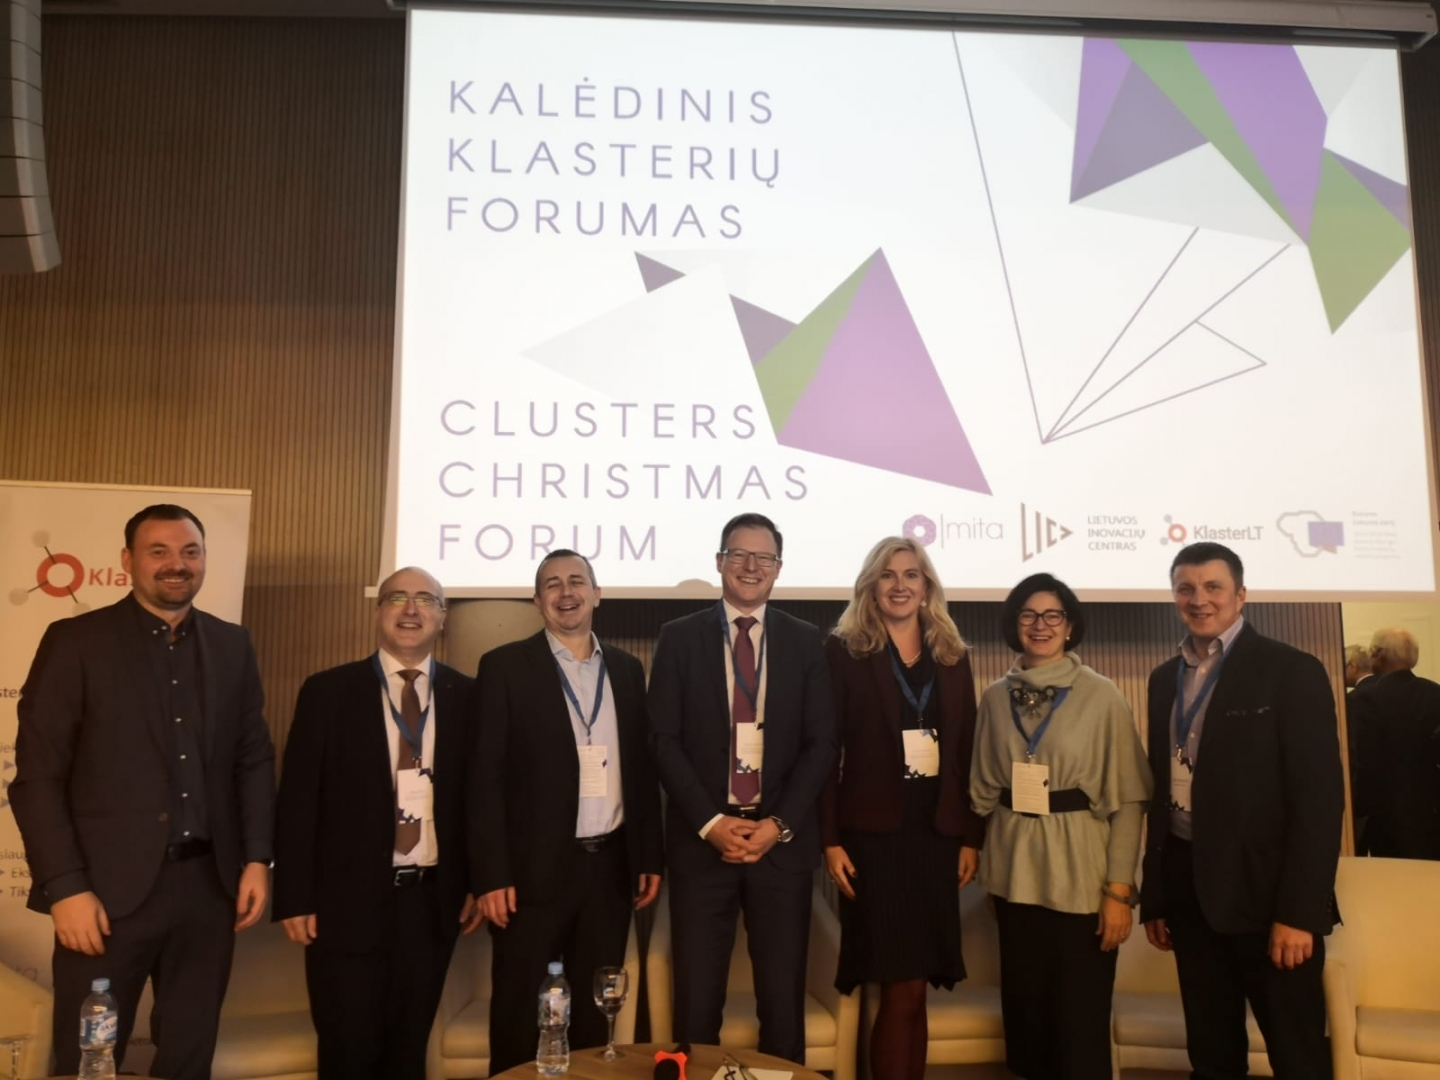 Clusters Christmas Forum 2019, Wilno